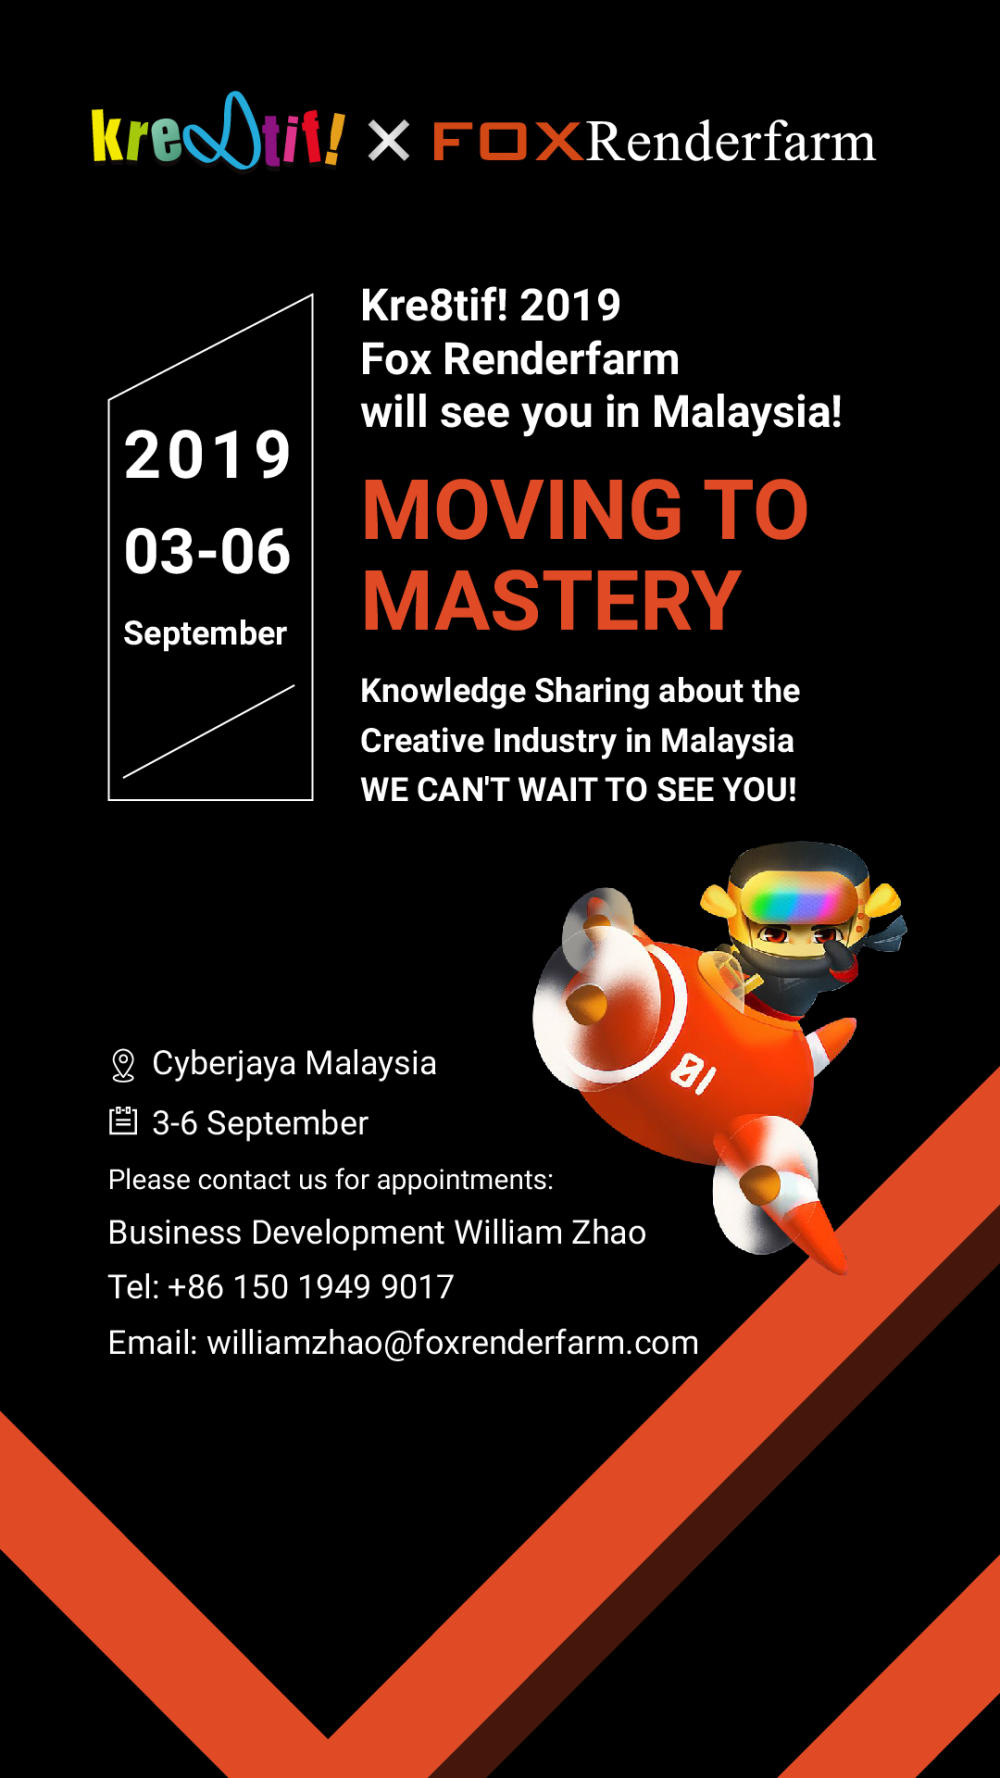 Kre8tif!2019 Fox Renderfarm will see you in Malaysia!-Invitation